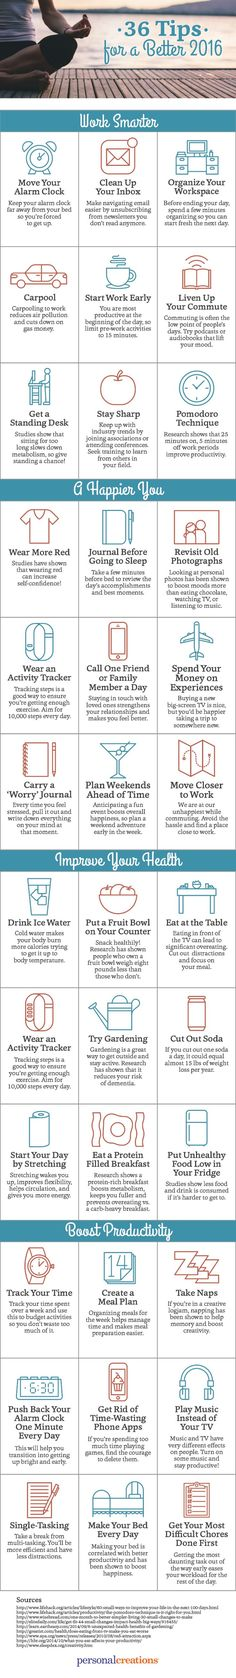 http://www.2uidea.com/category/Jewelry-Organizer/ 36 self-improvement tips for a better 2016